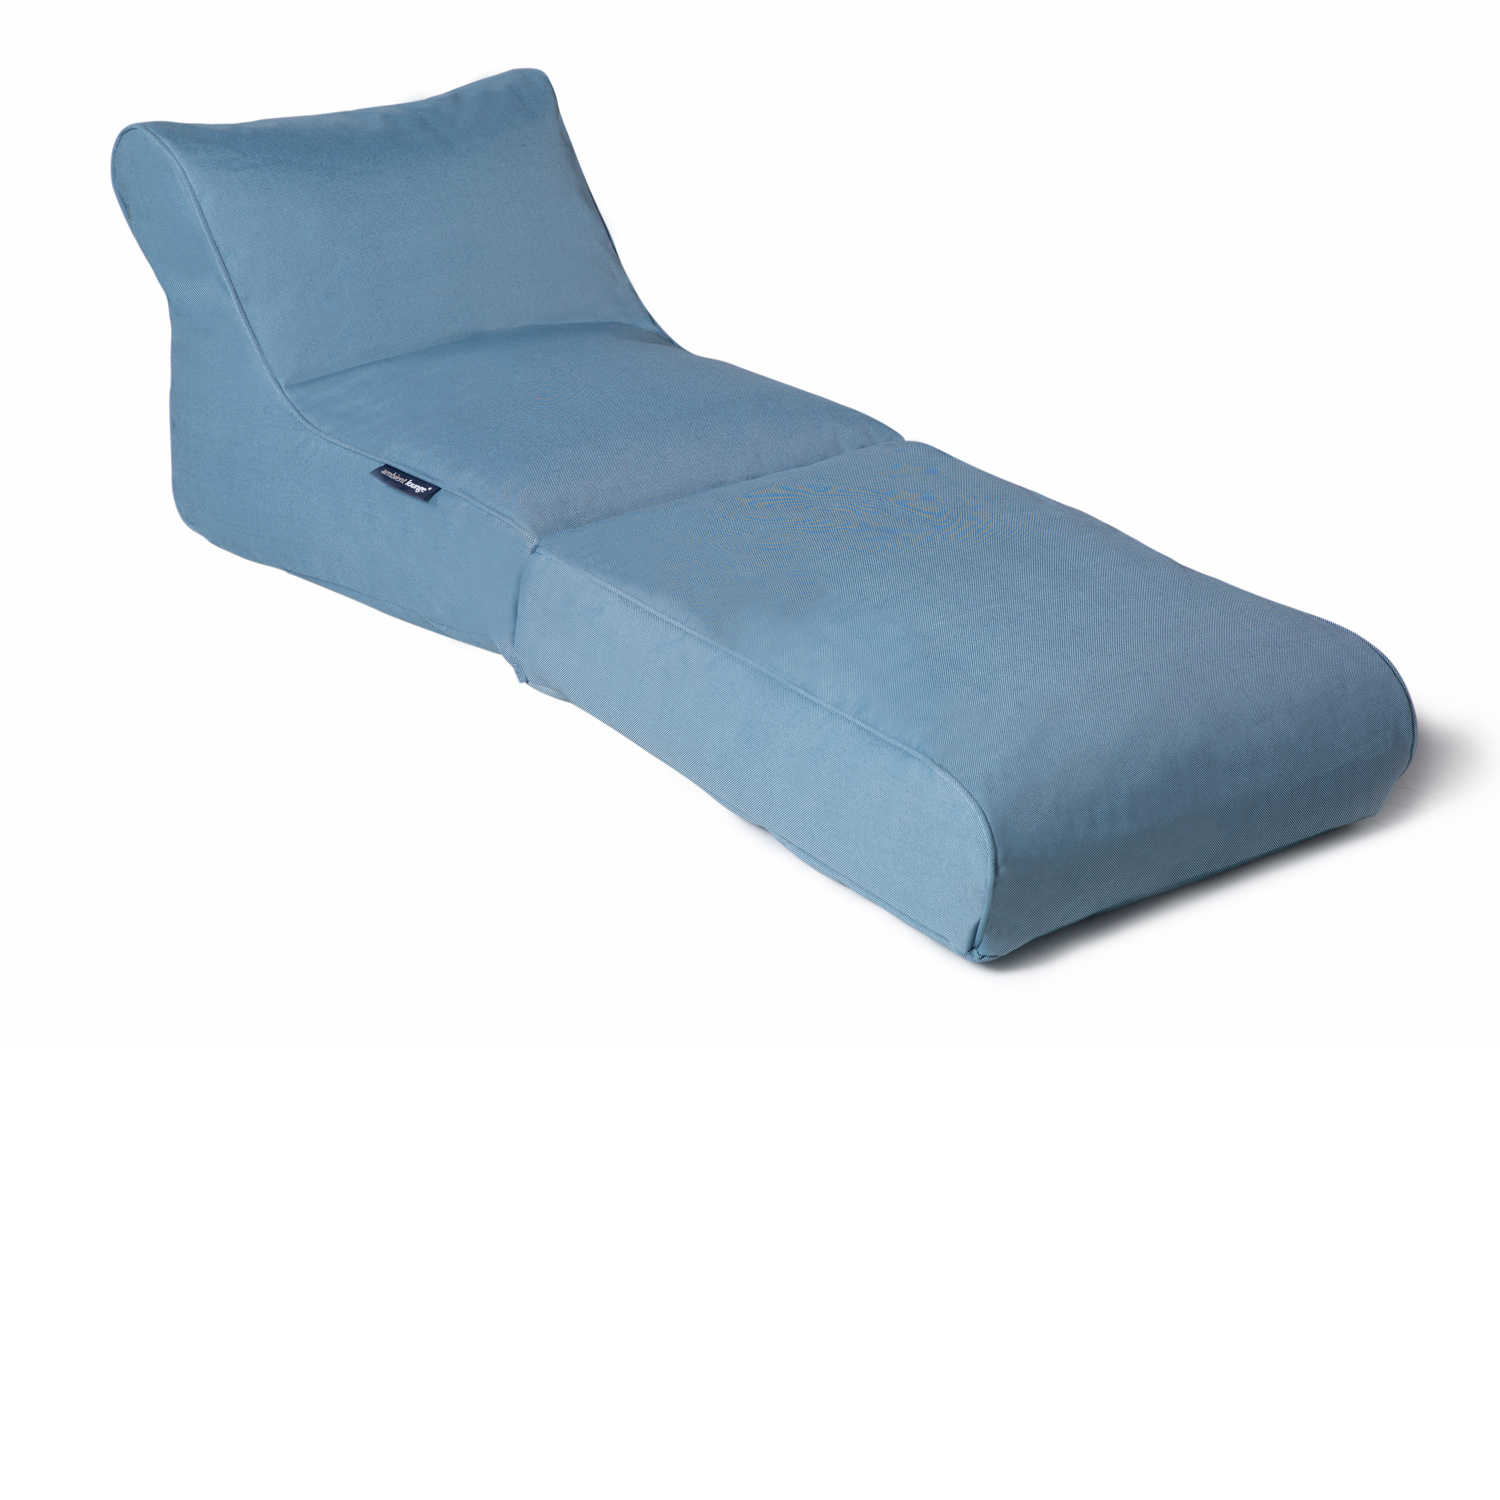 Outdoor Bean Bags Studio Lounger Blue Skye Eclipse